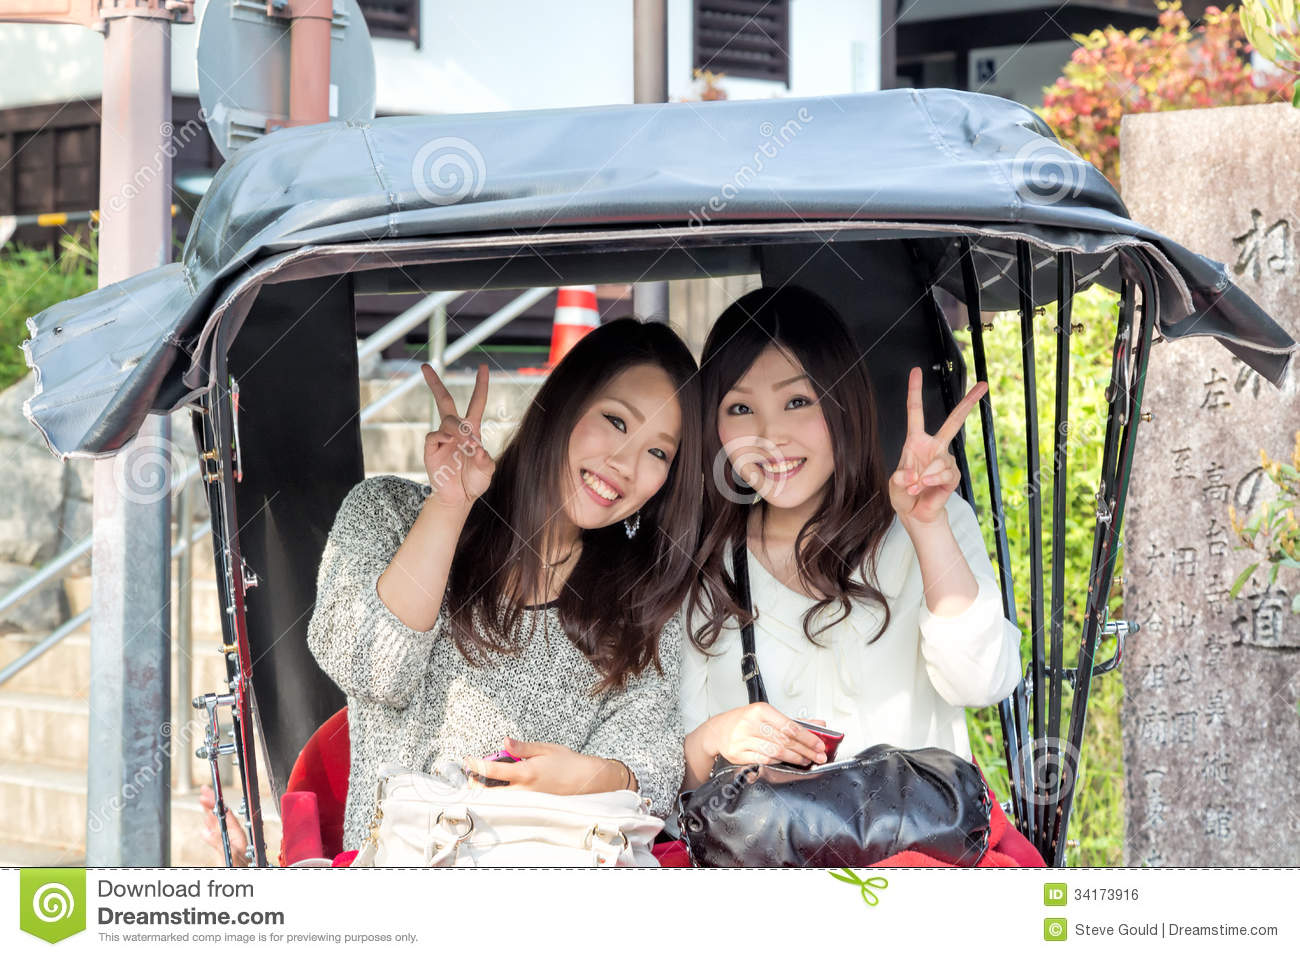 gould asian personals There is no other site like asian personals you'll meet korean, malaysian, japanese, chinese and many other singles when you sign up with our site get online, asian personals.